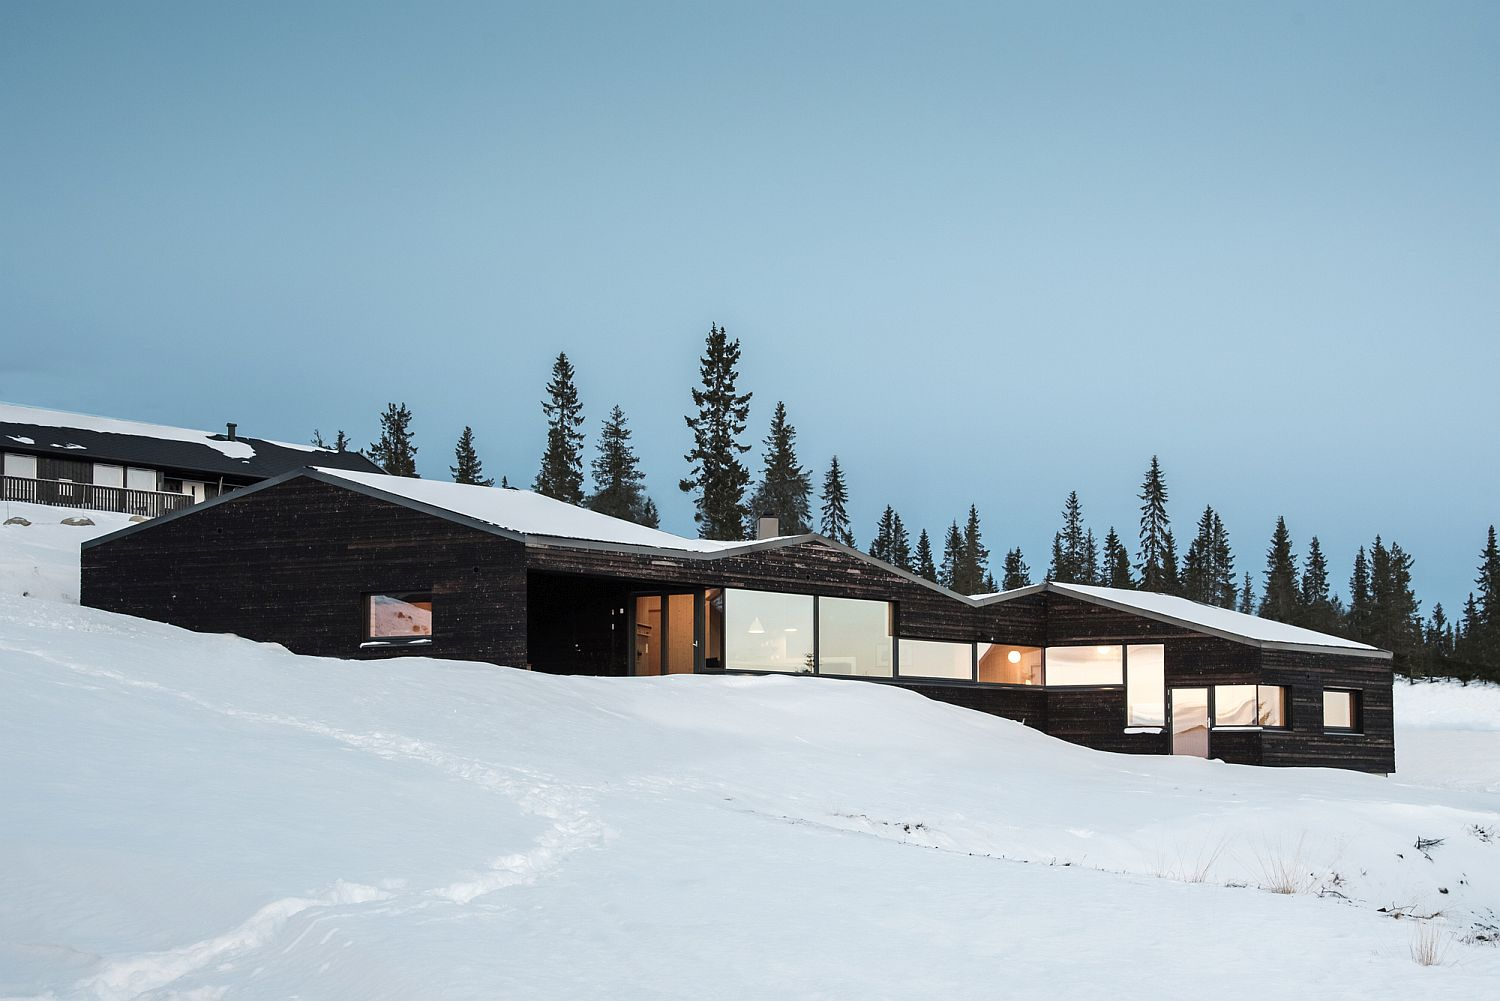 Smart placement of windows gives the cabin a modern vibe